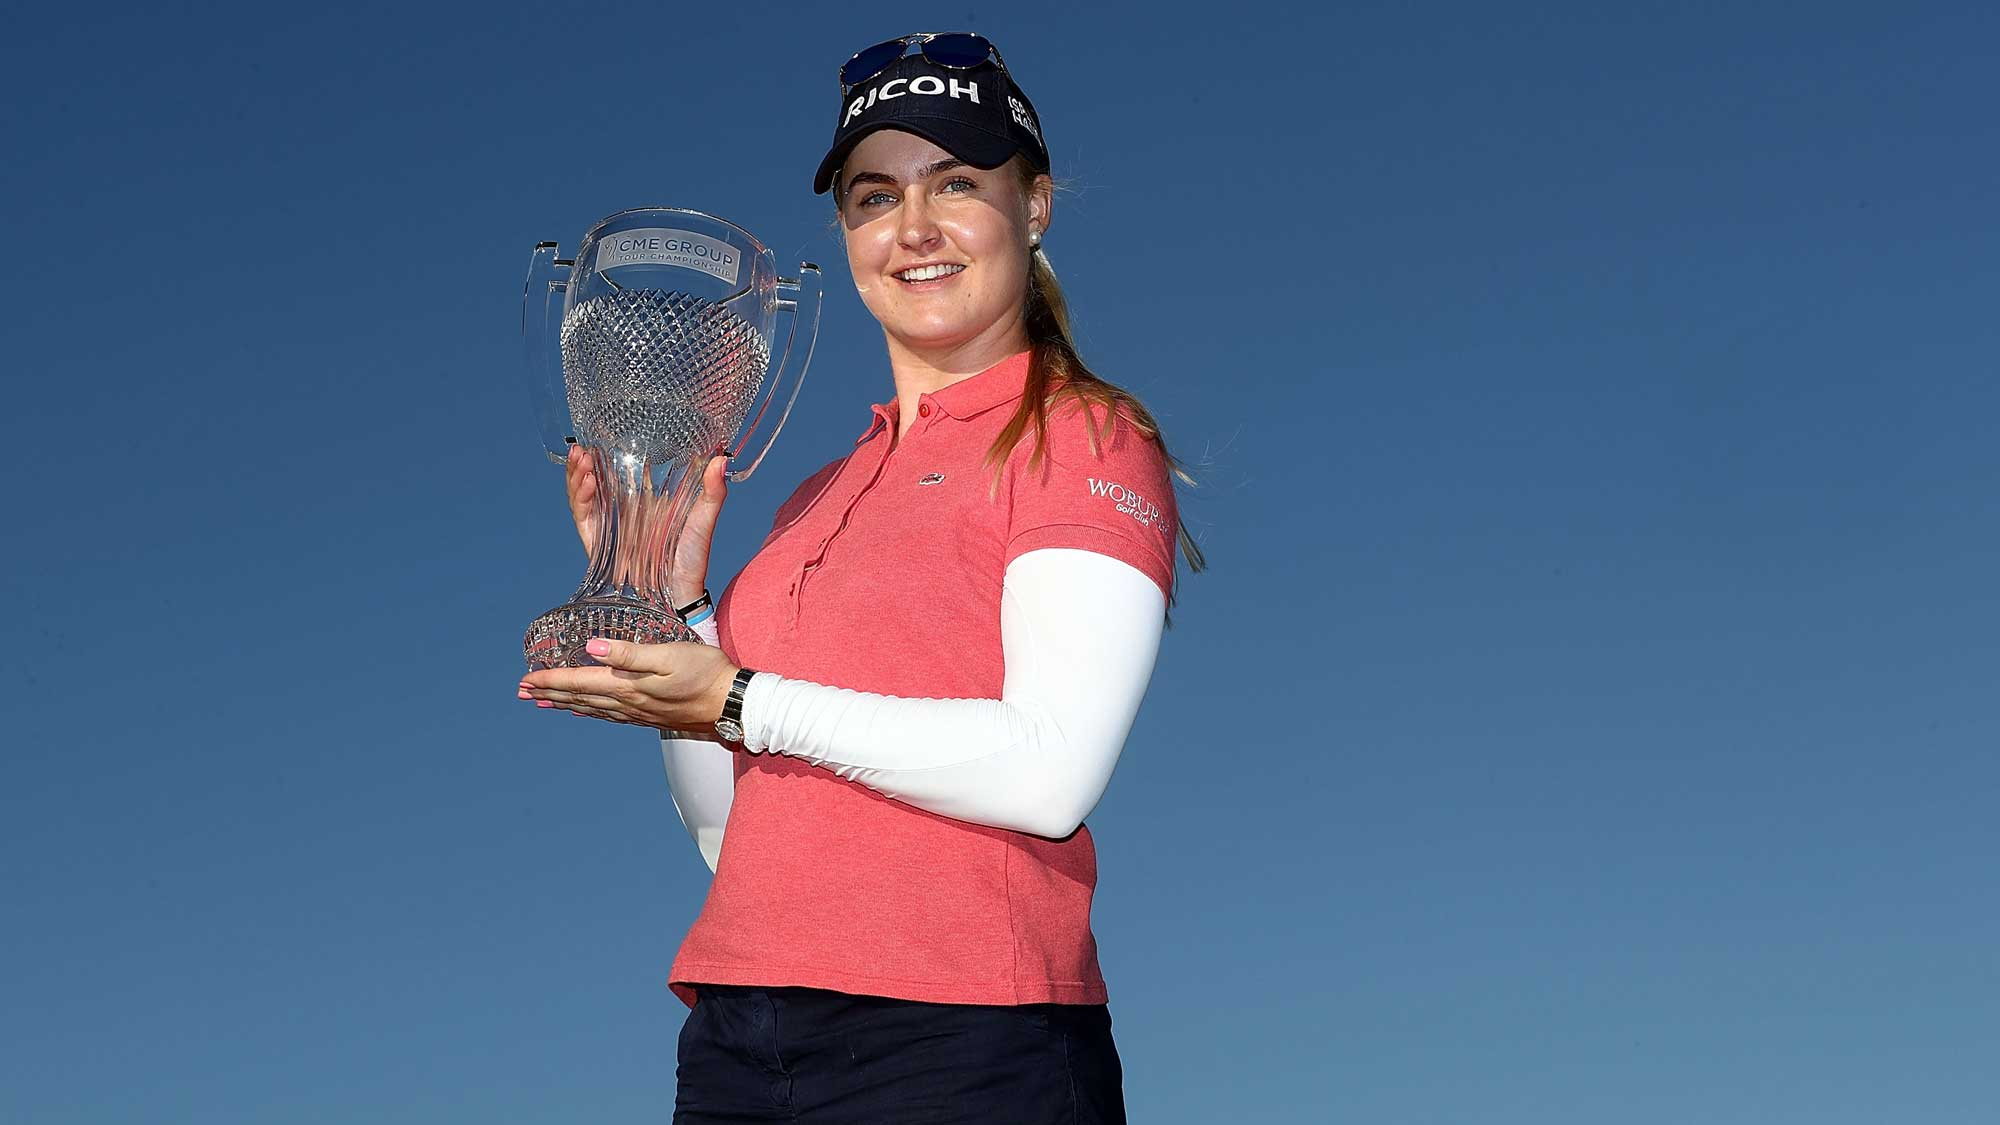 Charley Hull of England poses with the CME Tour Championship trophy during the final round of the CME Group Tour Championship at Tiburon Golf Club